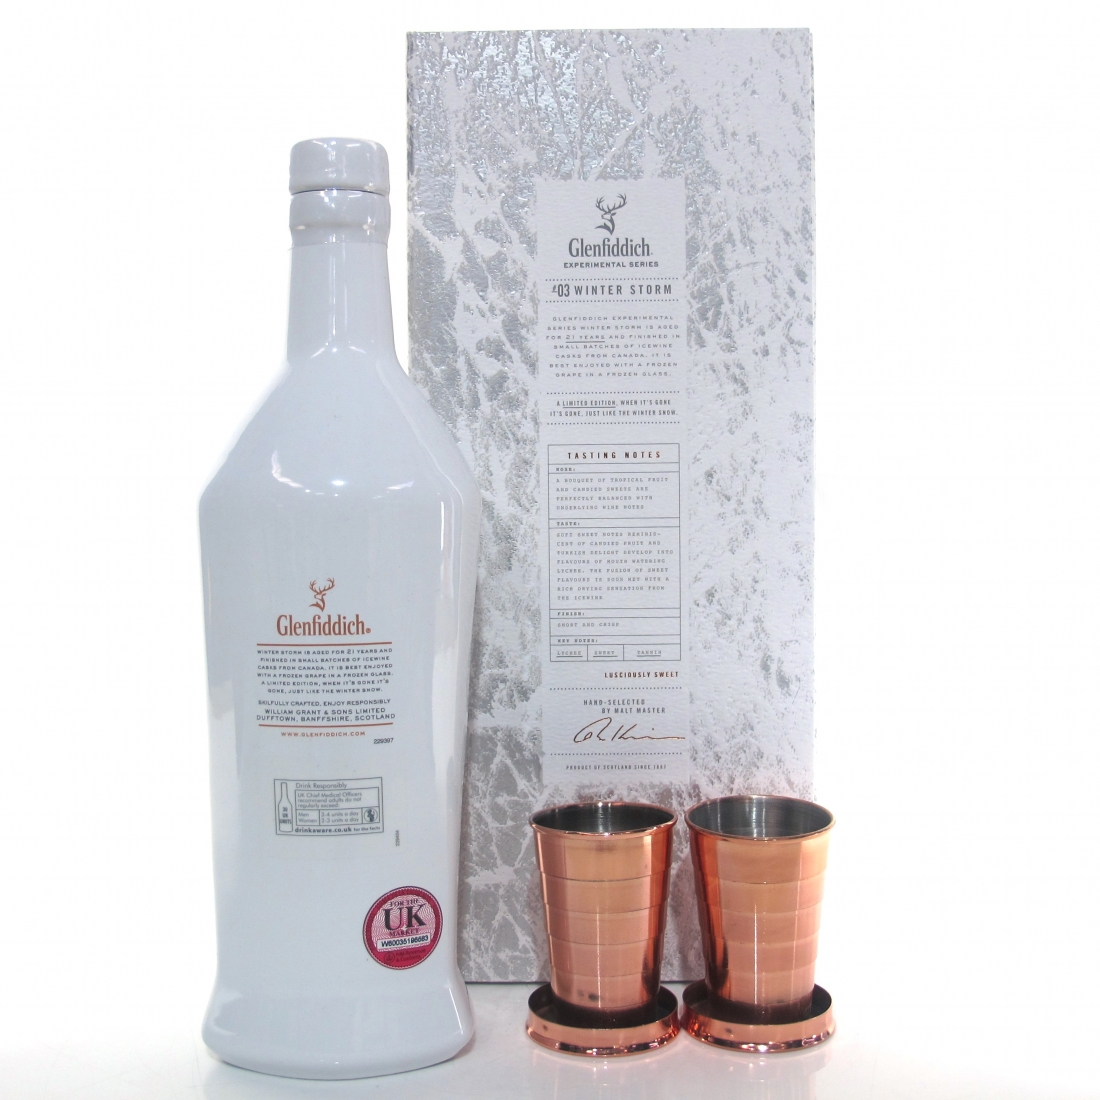 Glenfiddich 21 Year Old Experimental Series #3 Winter Storm / Includes 2 Branded Collapsible Cups